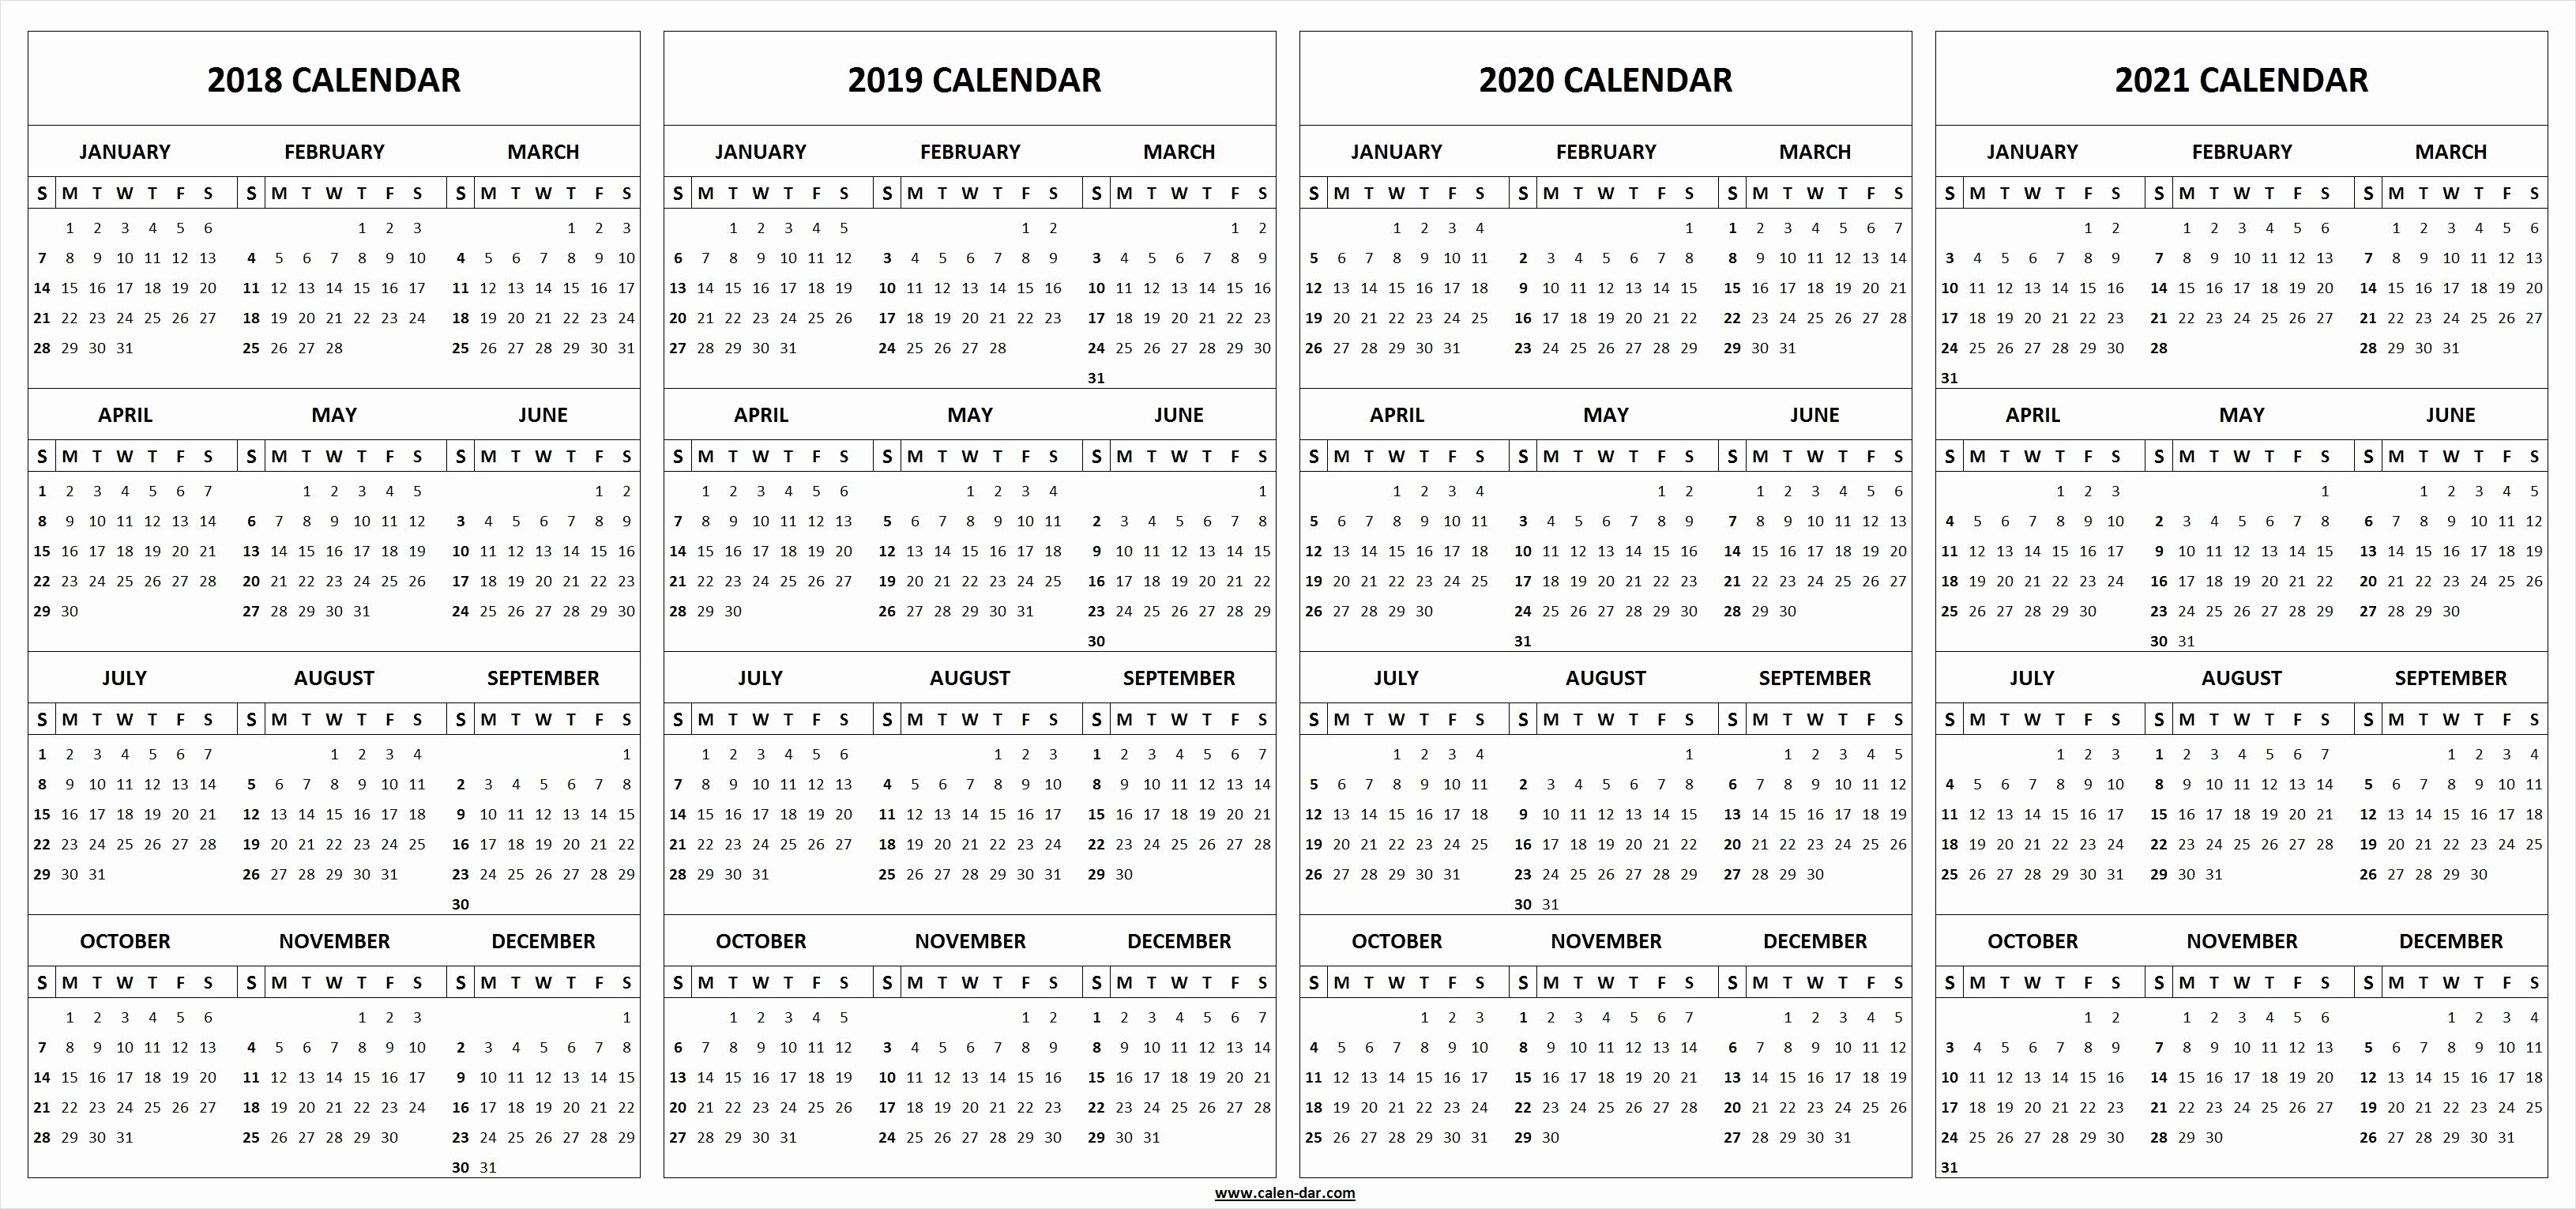 4 Year Plan Template Luxury 4 Four Year 2018 2019 2020 2021 Calendar Printable